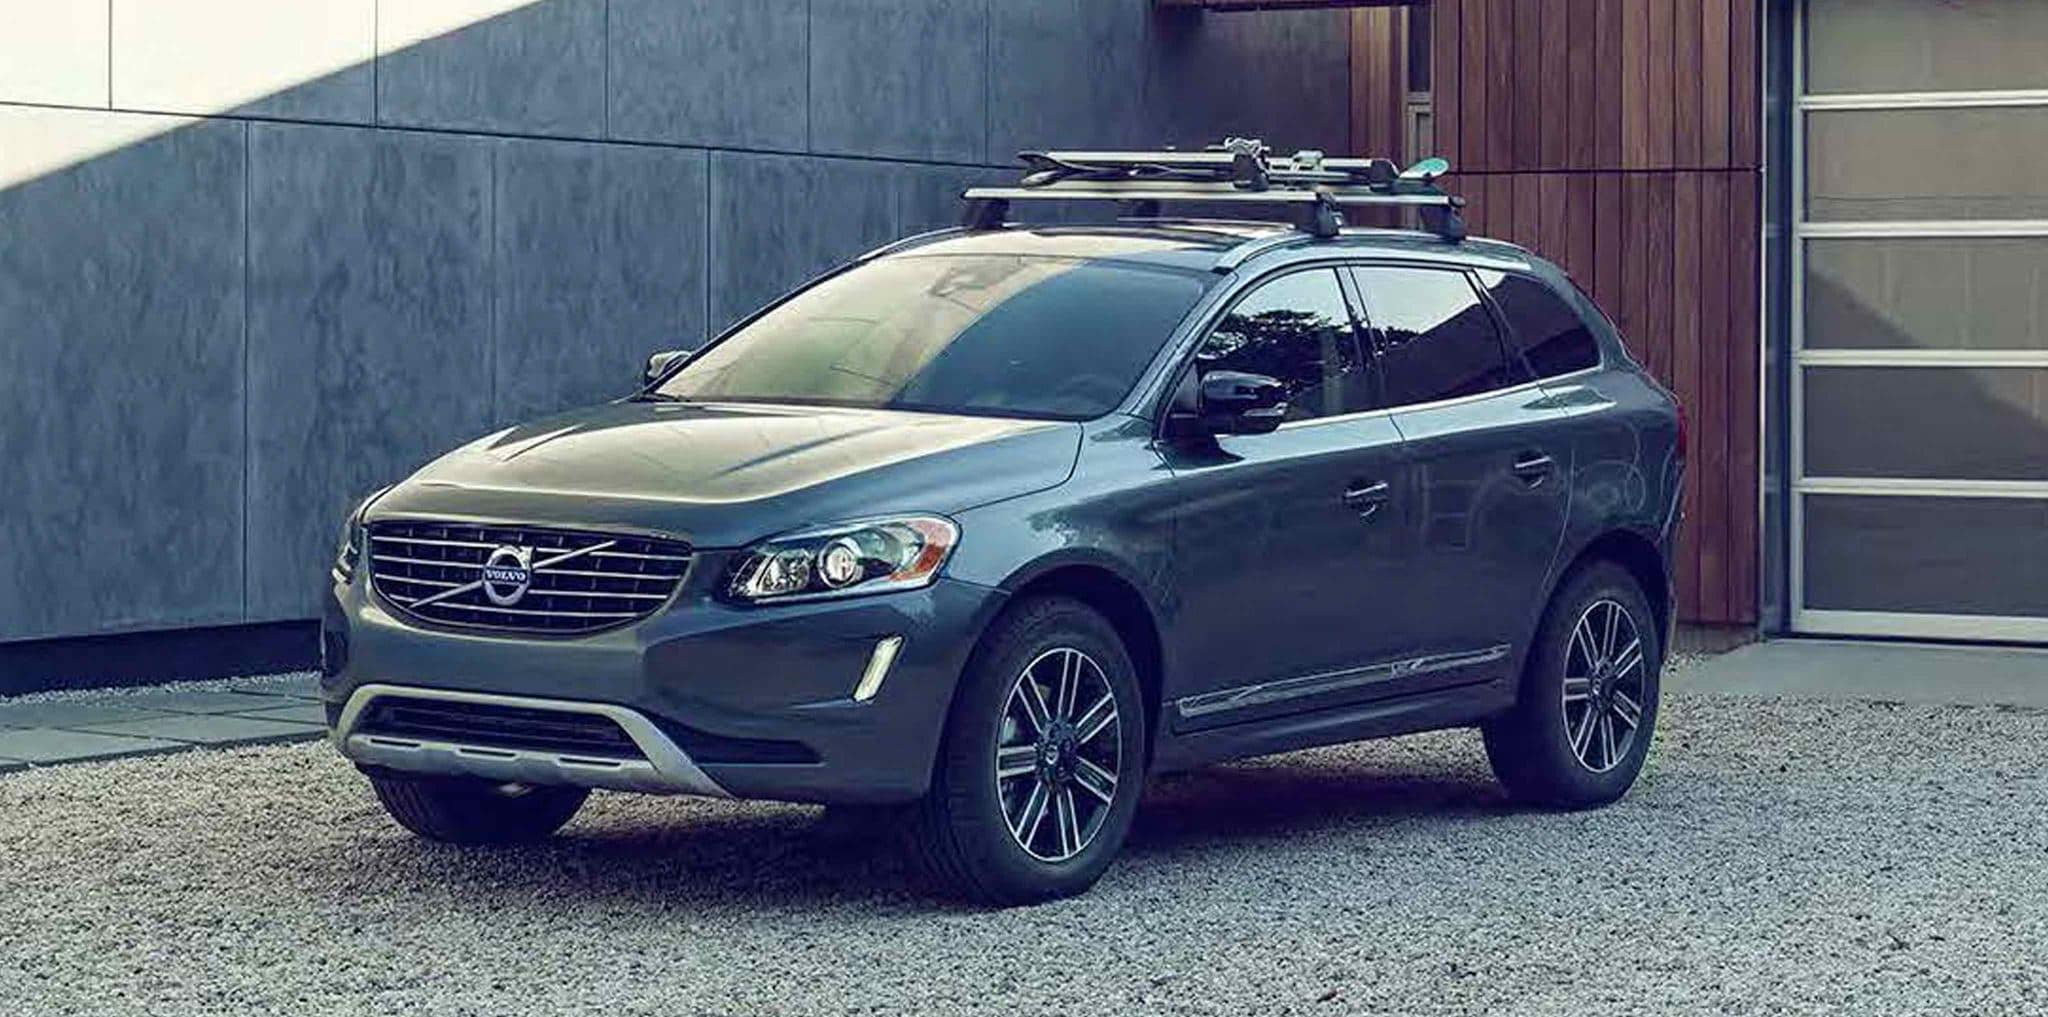 New Volvo Xc60 For Sale At Don Beyer Volvo Of Falls Church